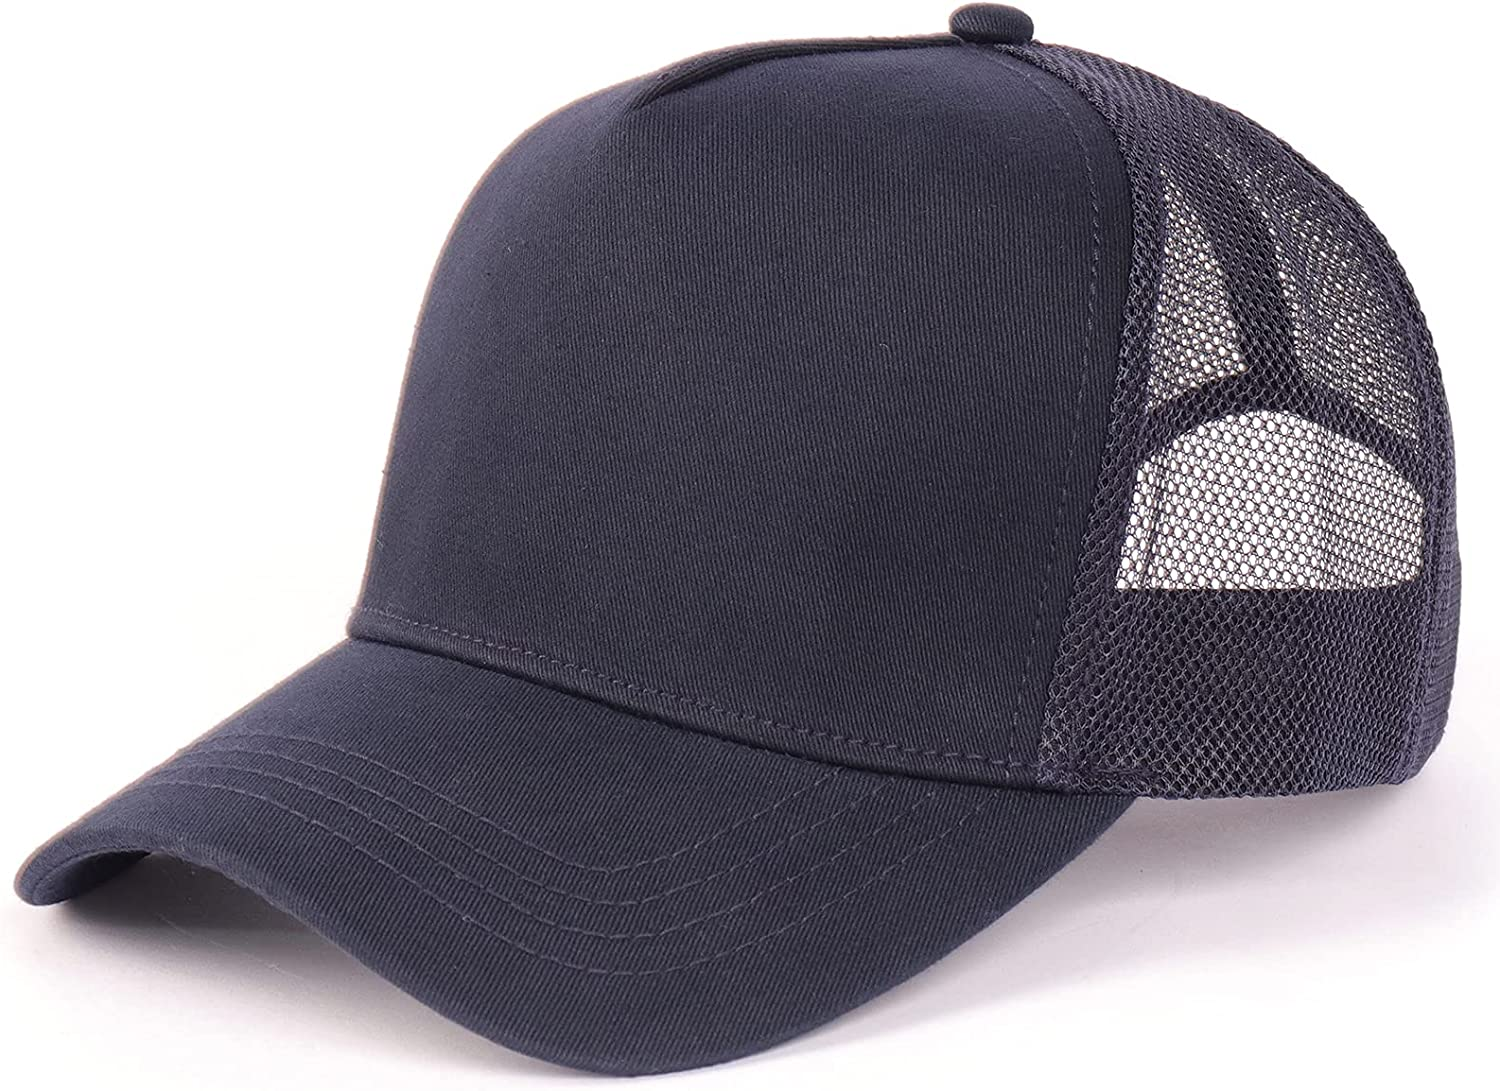 Oversize XXL Mesh Trucker Hat Max 54% OFF Baseball Breathable Selling High Crown Cap